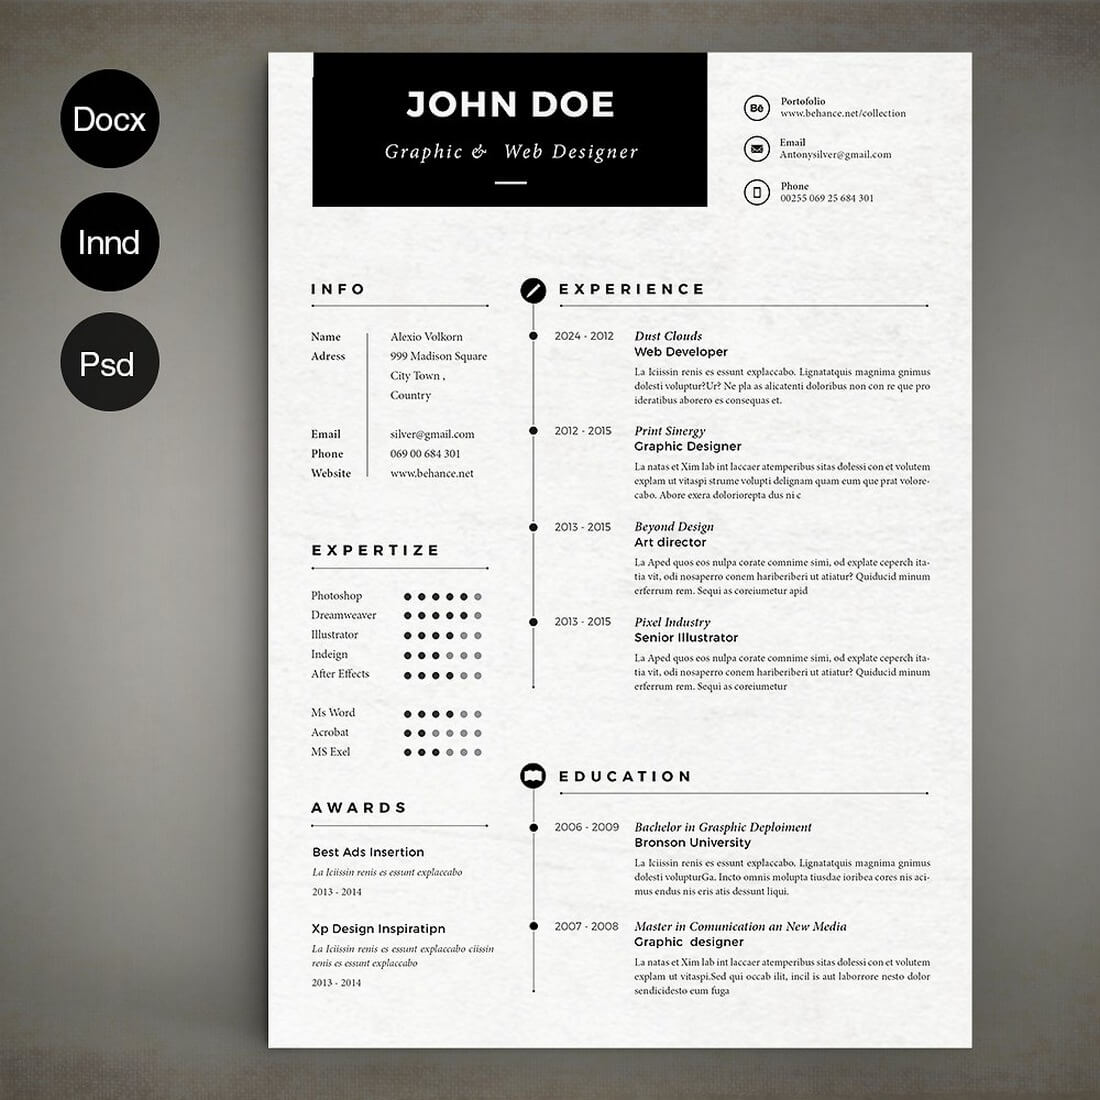 Simple design resume selol ink simple design resume altavistaventures Choice Image